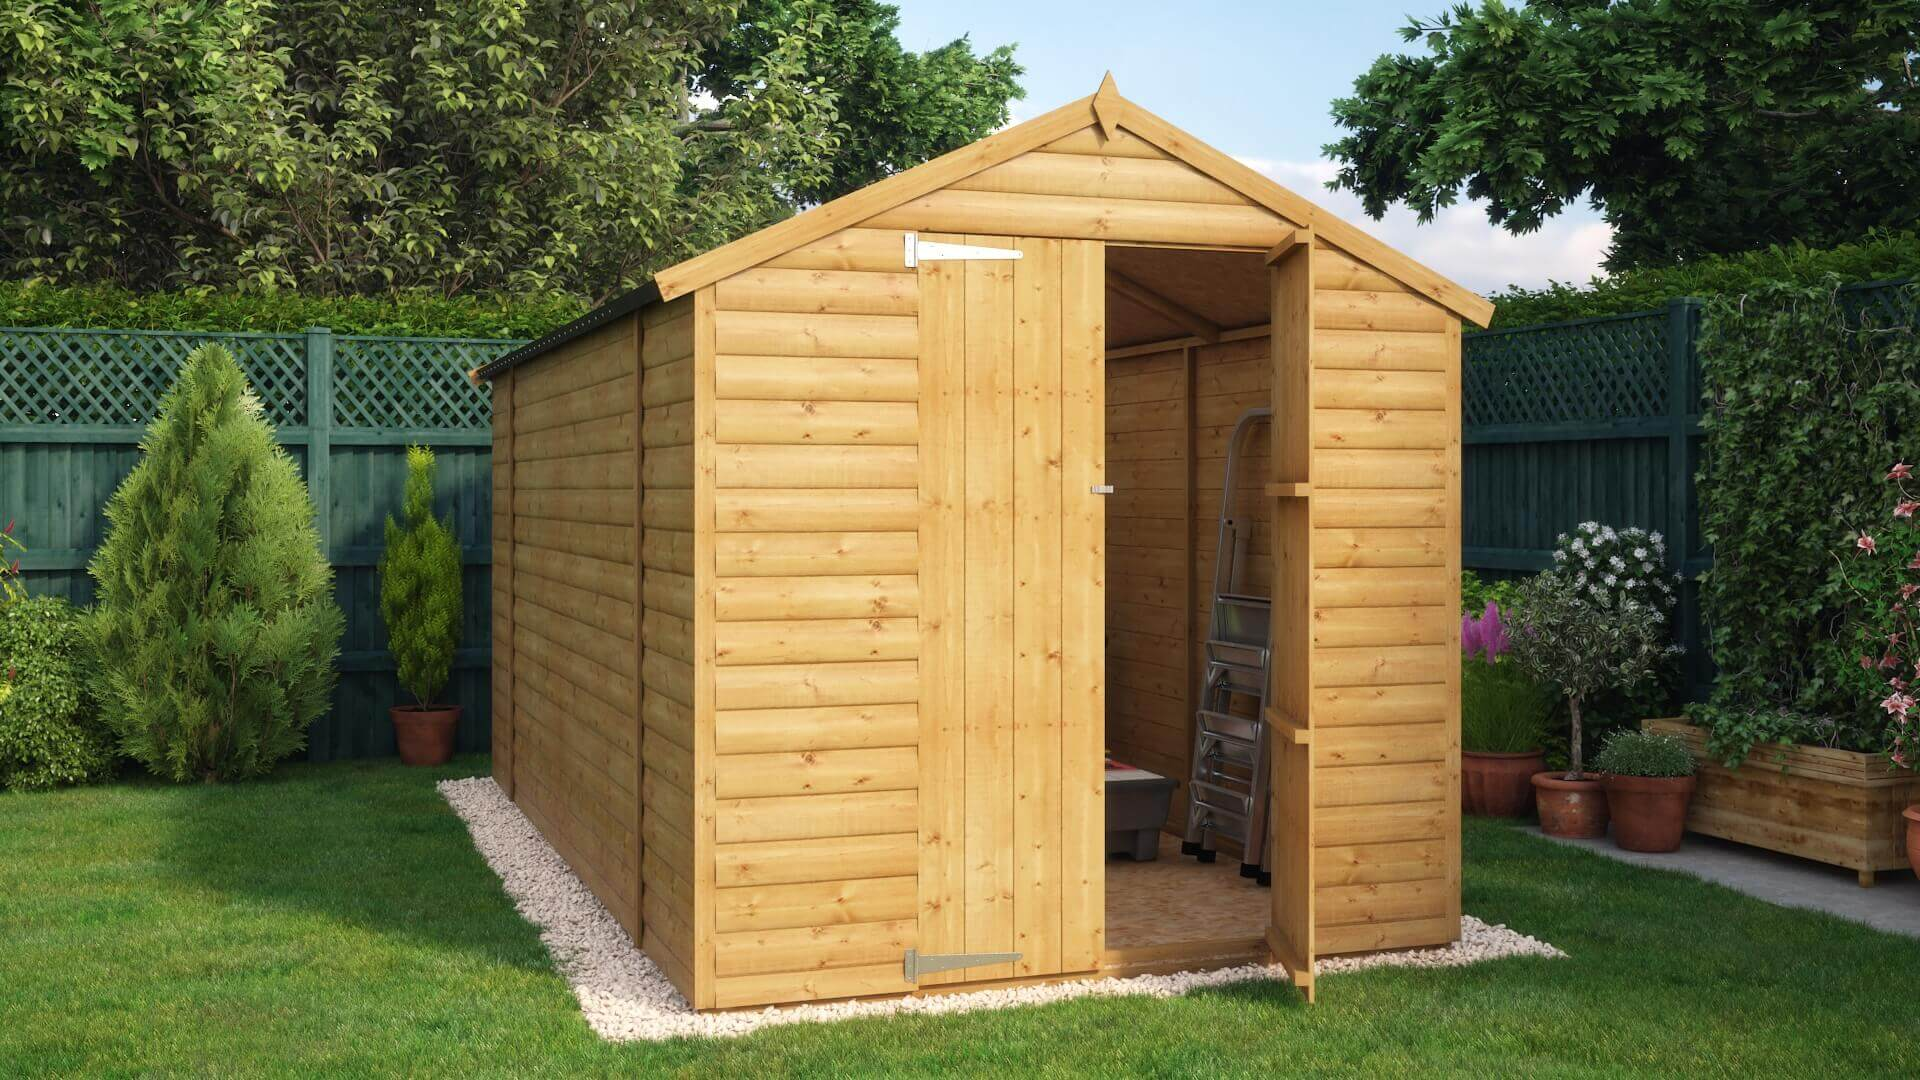 Ft X Ft Loglap Windowless Garden Shed Archives Project Timber - Difference between log lap sheds and ship lap sheds